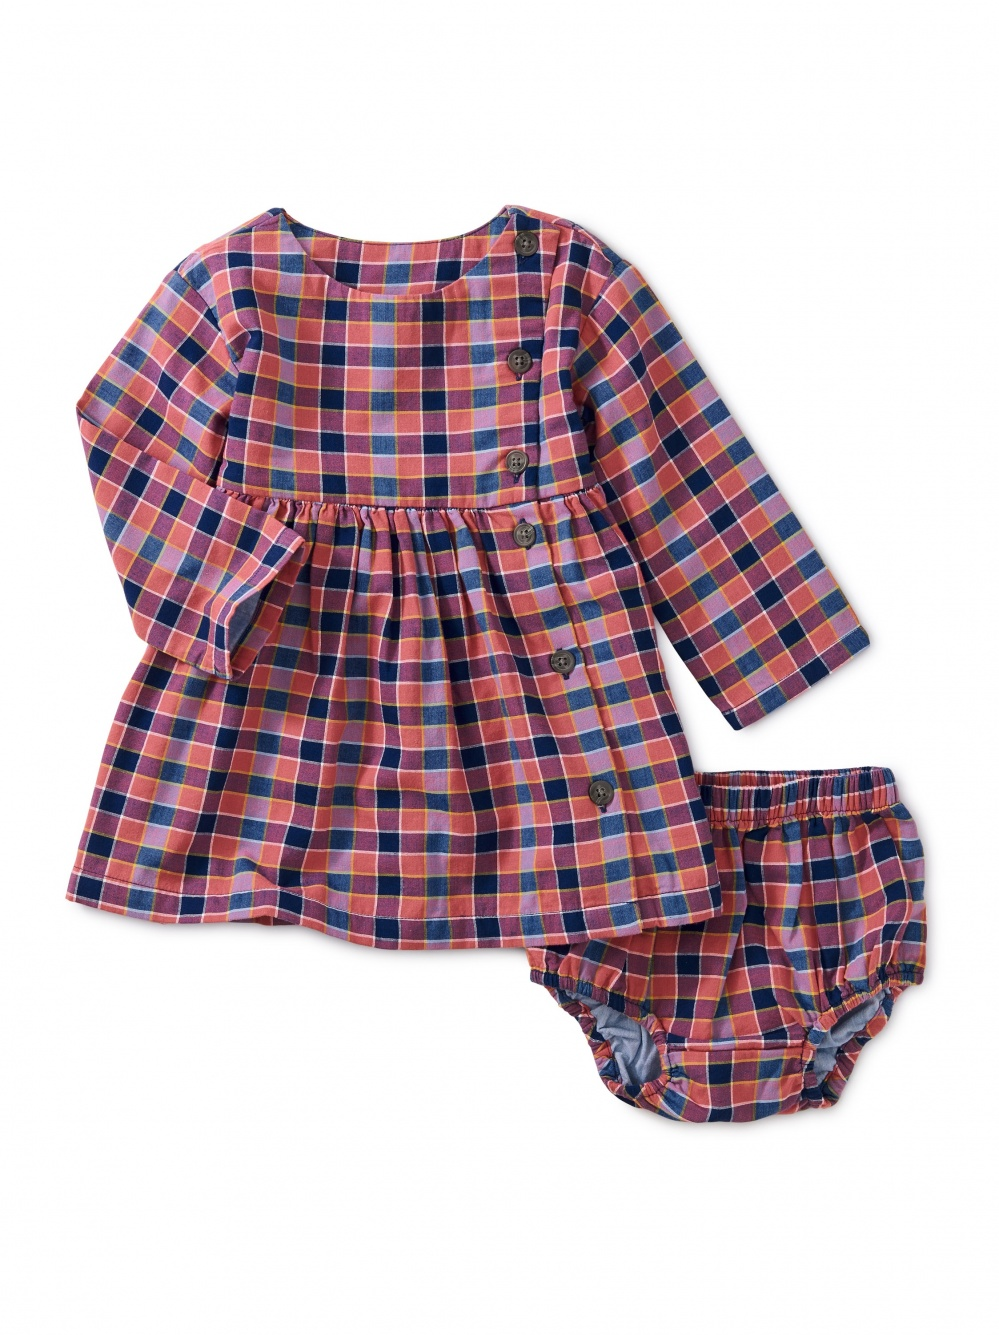 Plaid Woven Baby Dress